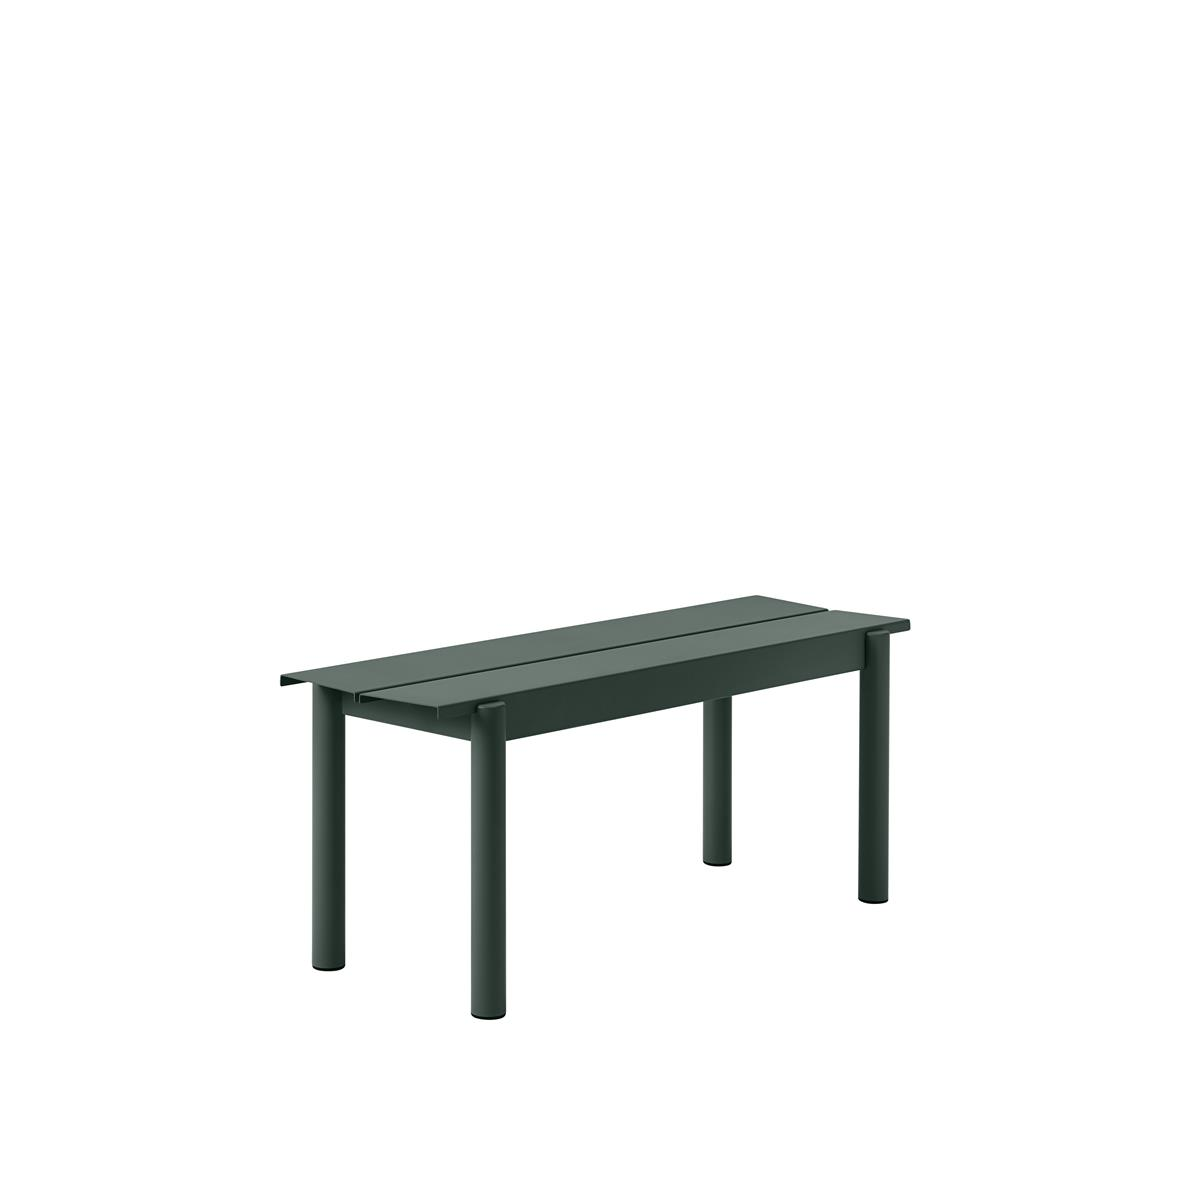 Linear Steel Bench 110 x H45,5 - Dark Green